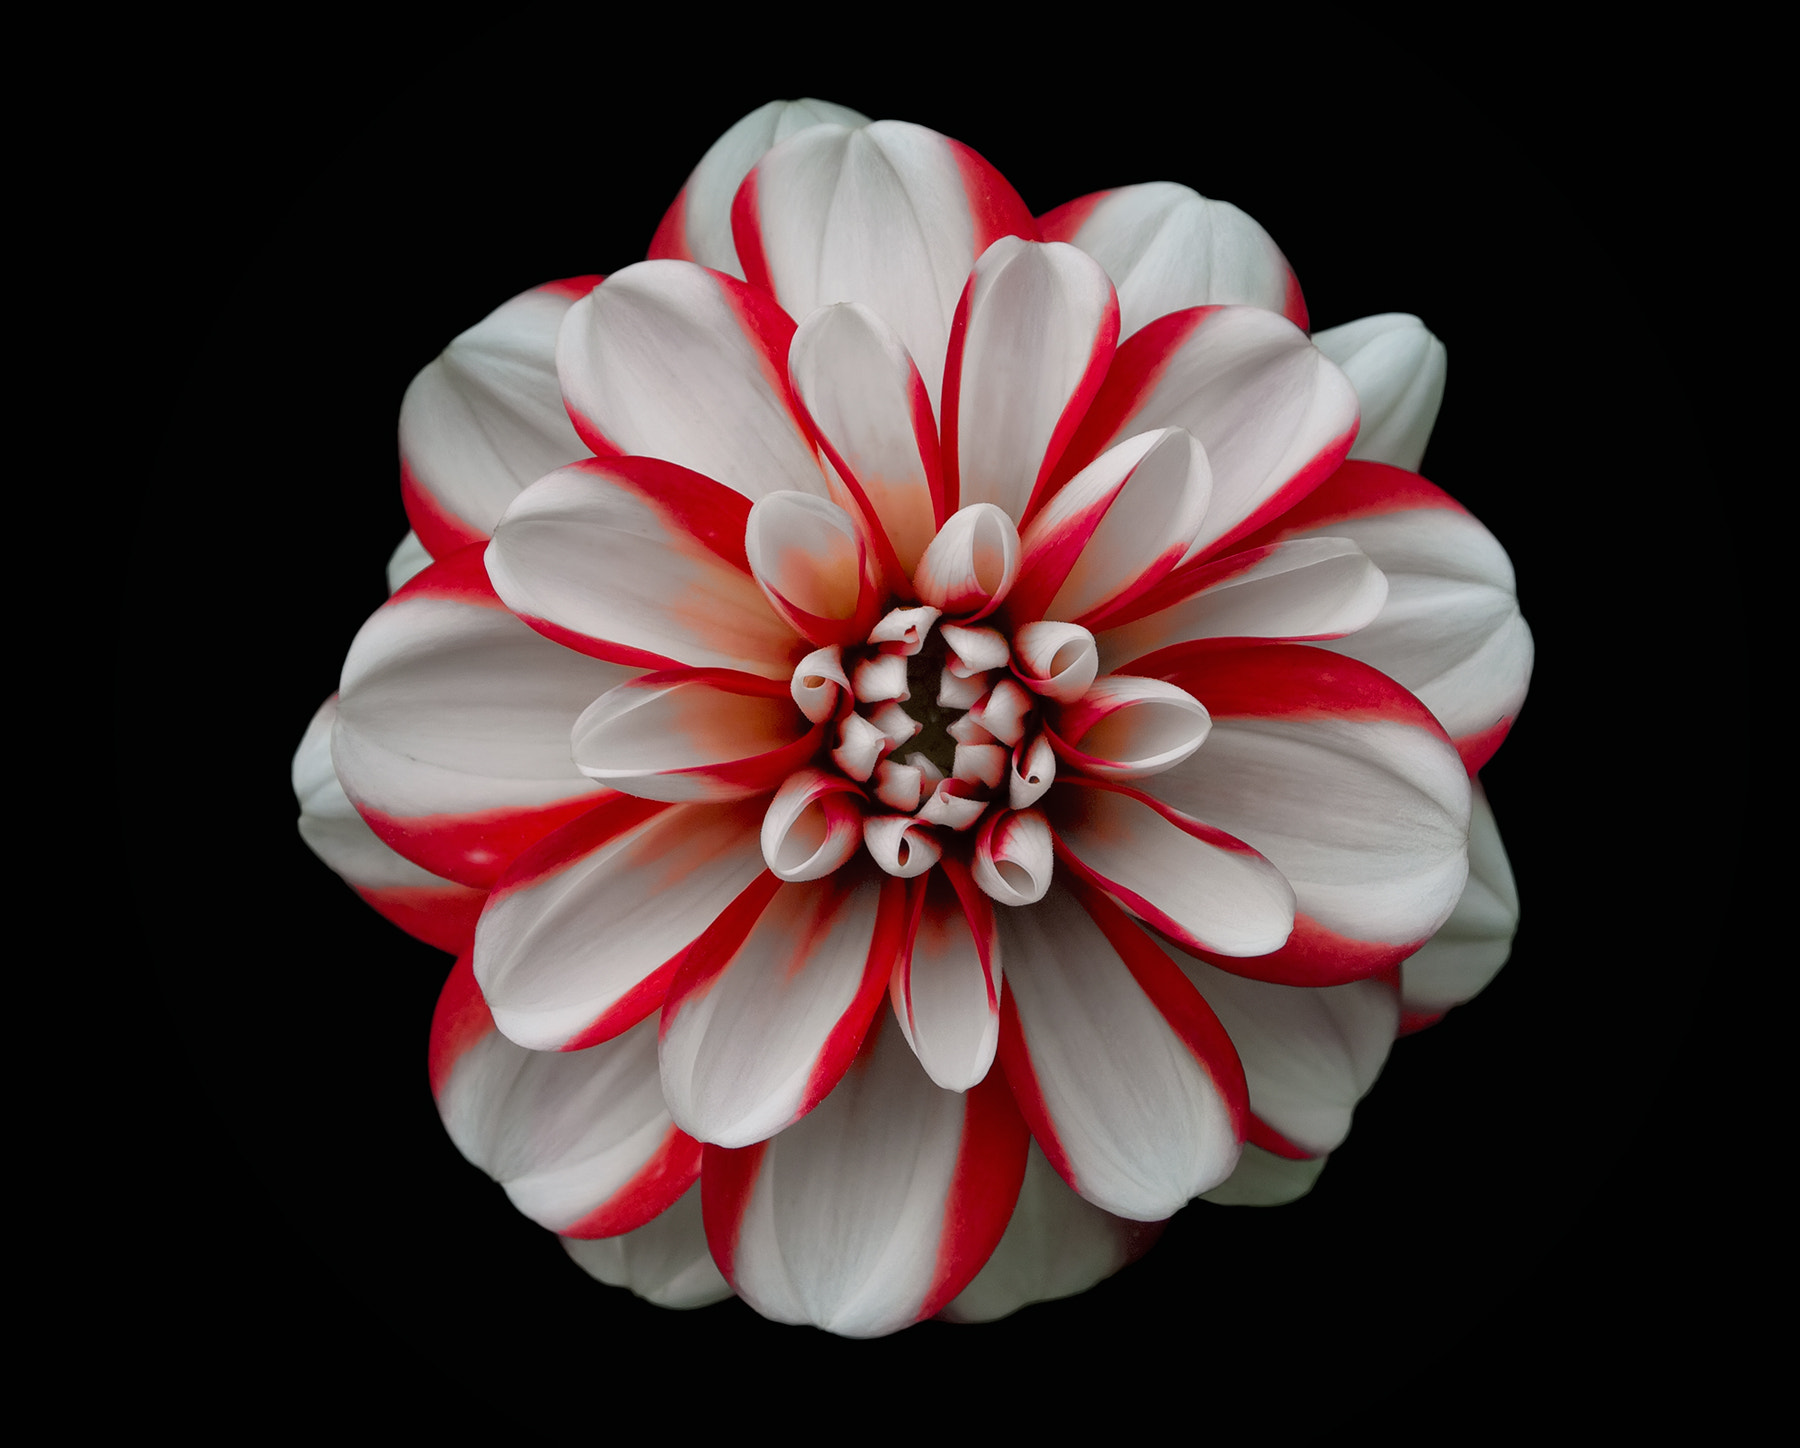 Photograph Red and white feeling by Marta Borreguero on 500px